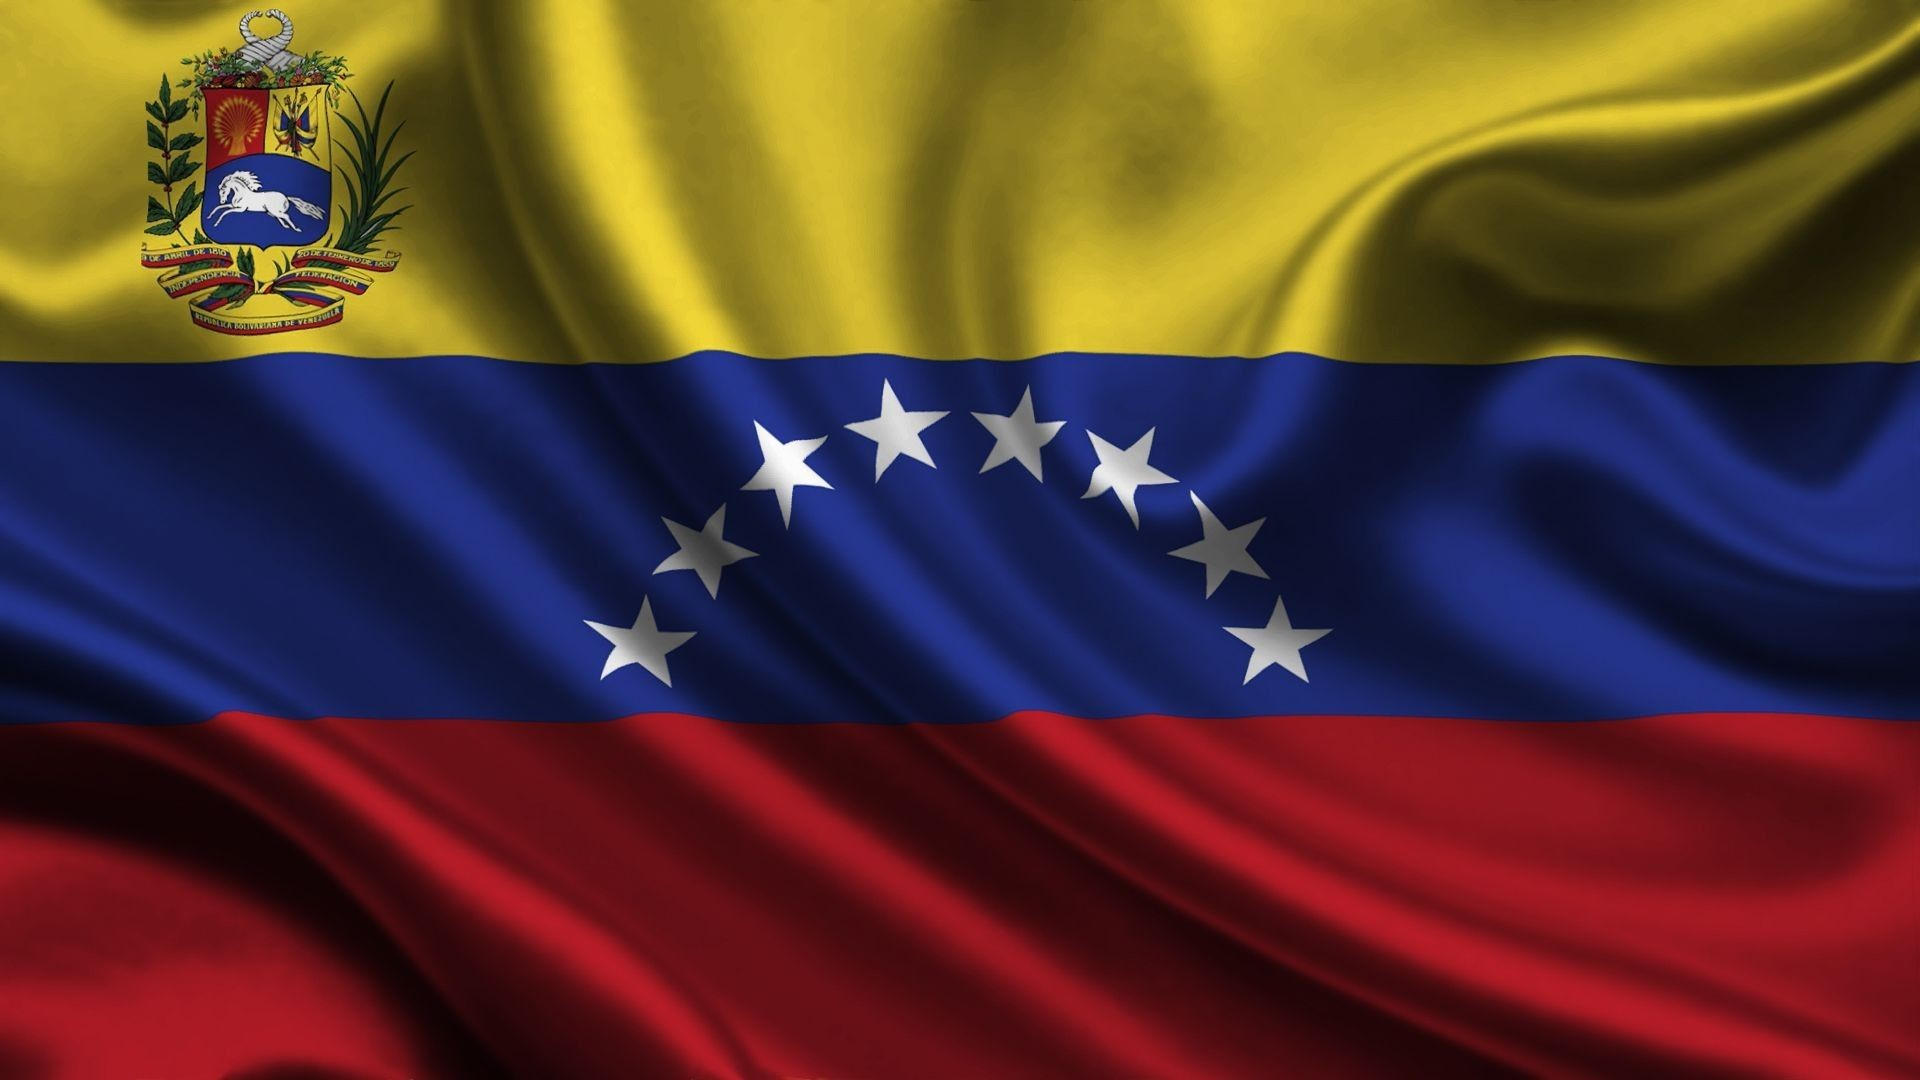 Res: 1920x1080, Flag of Venezuela — one of the state symbols of the Bolivarian Republic.  Represents the rectangular